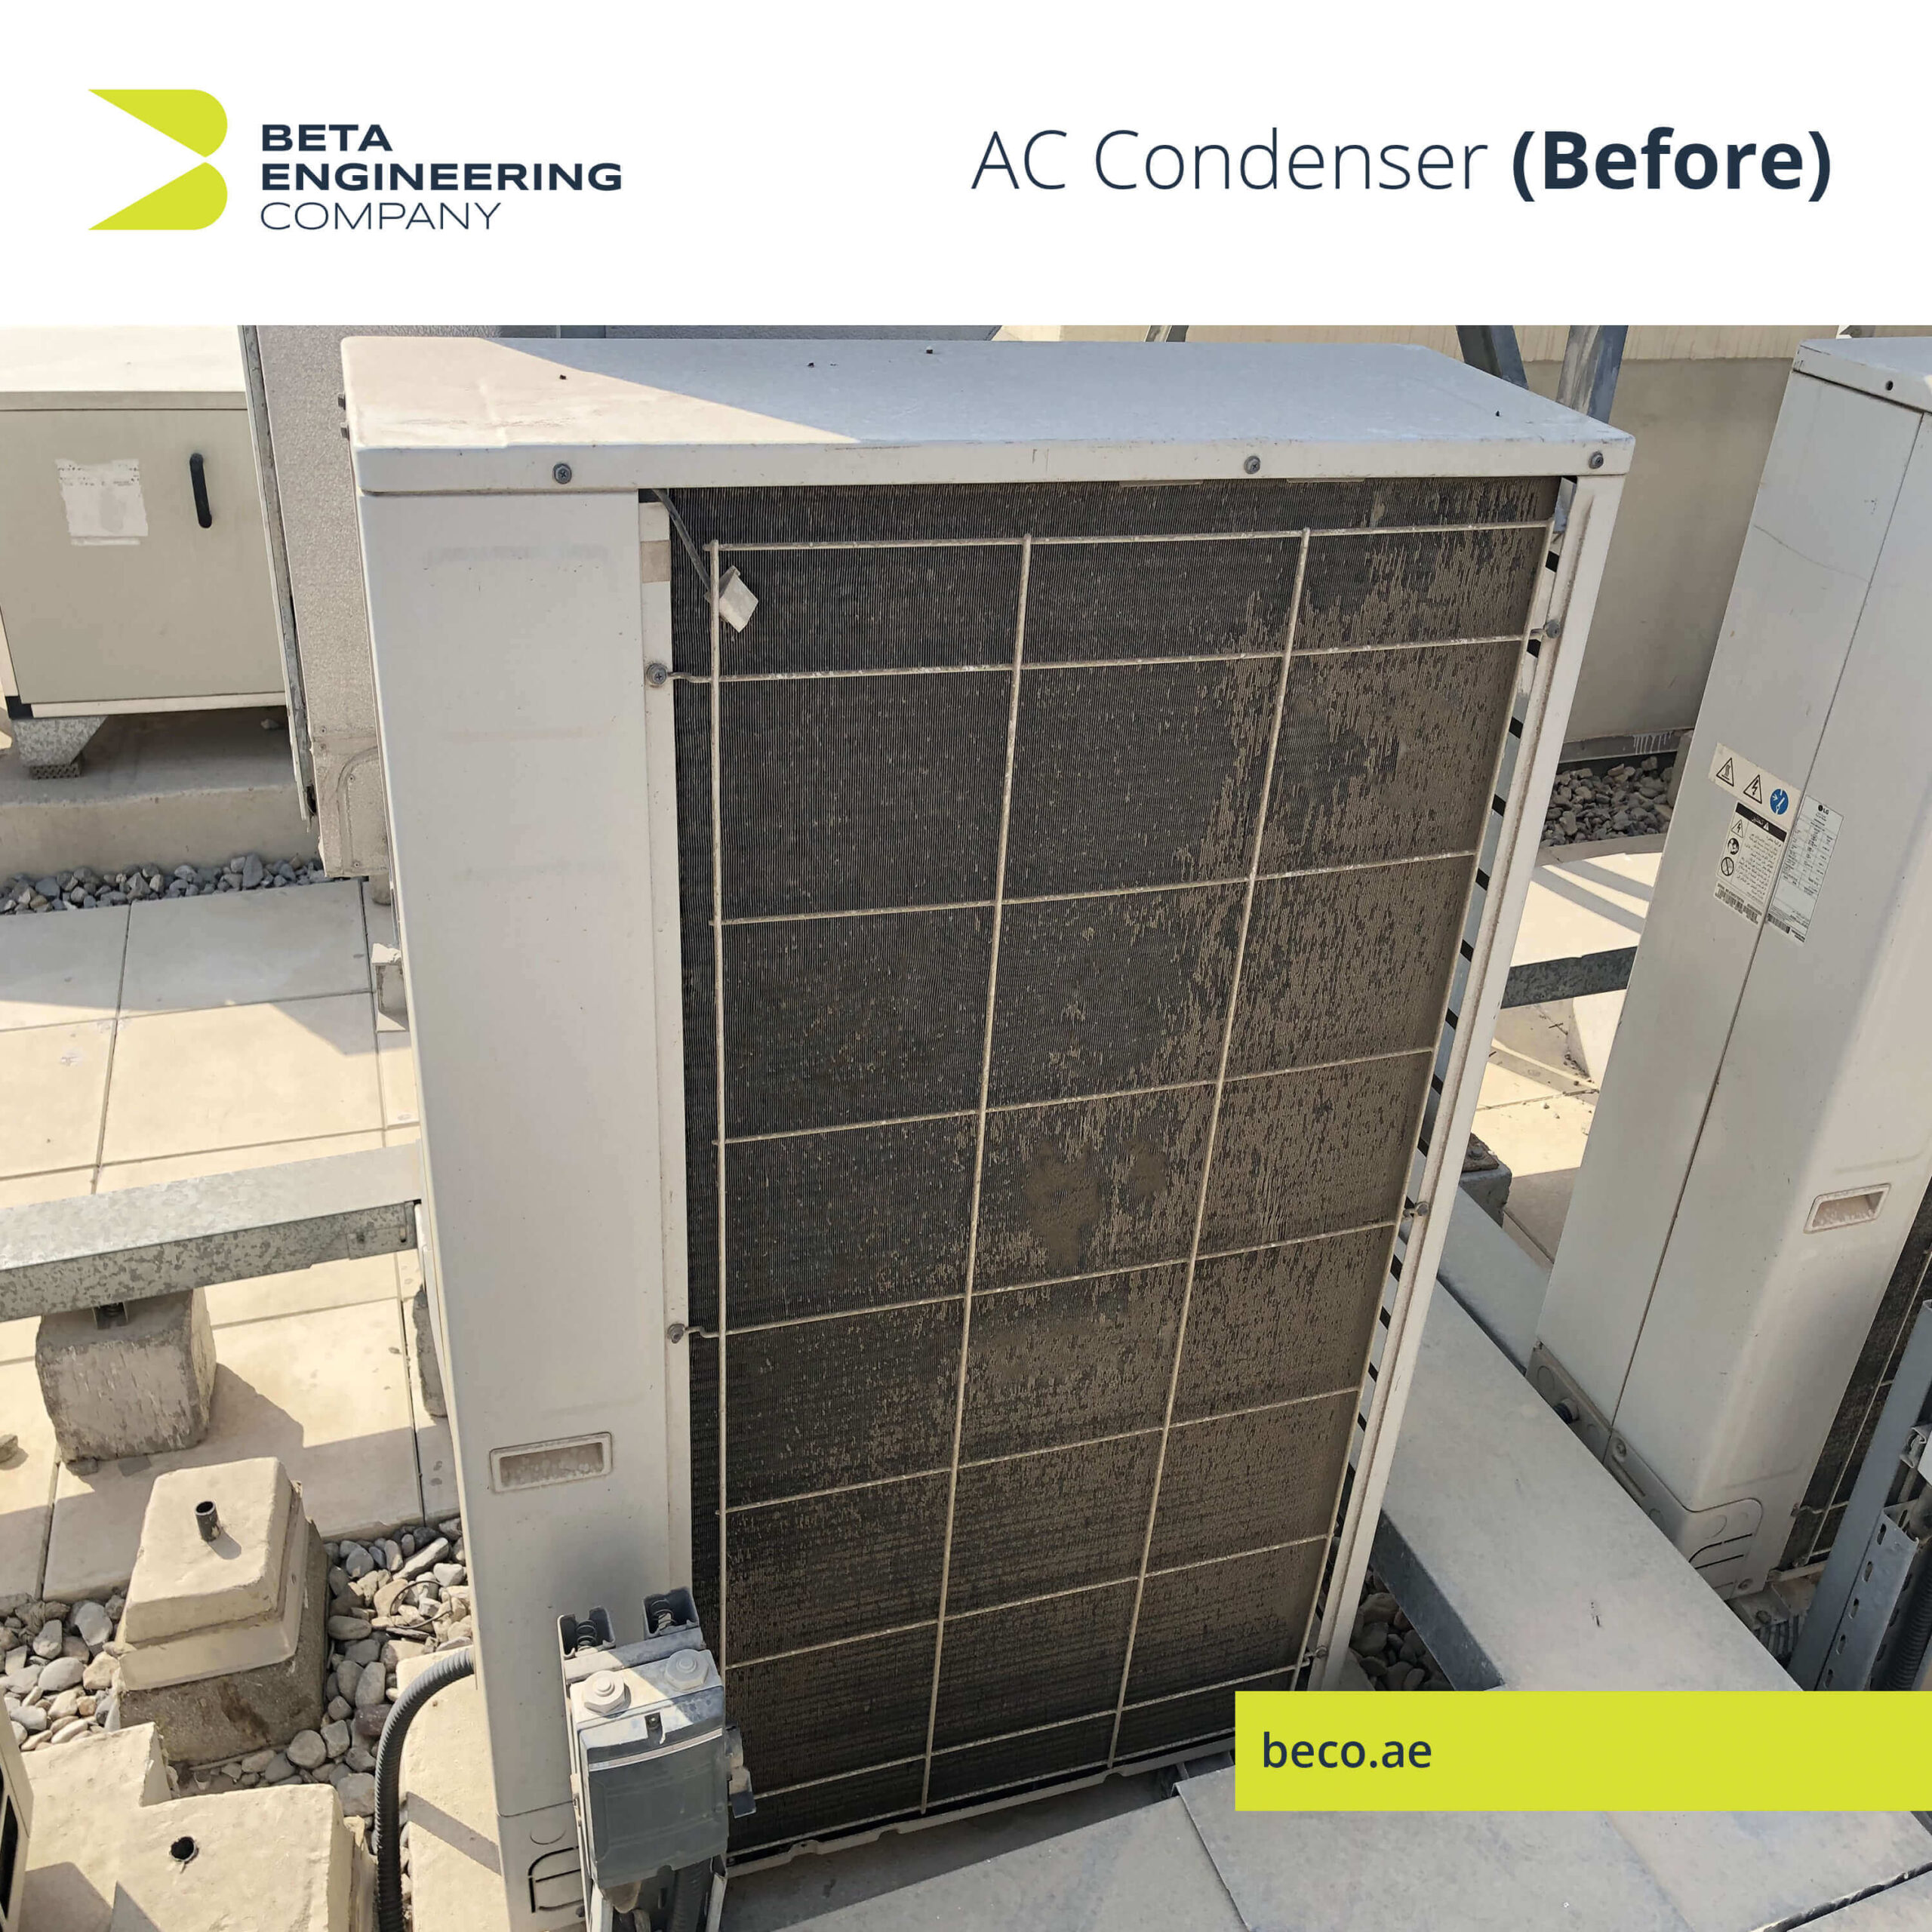 Before AC Condenser Cleaning